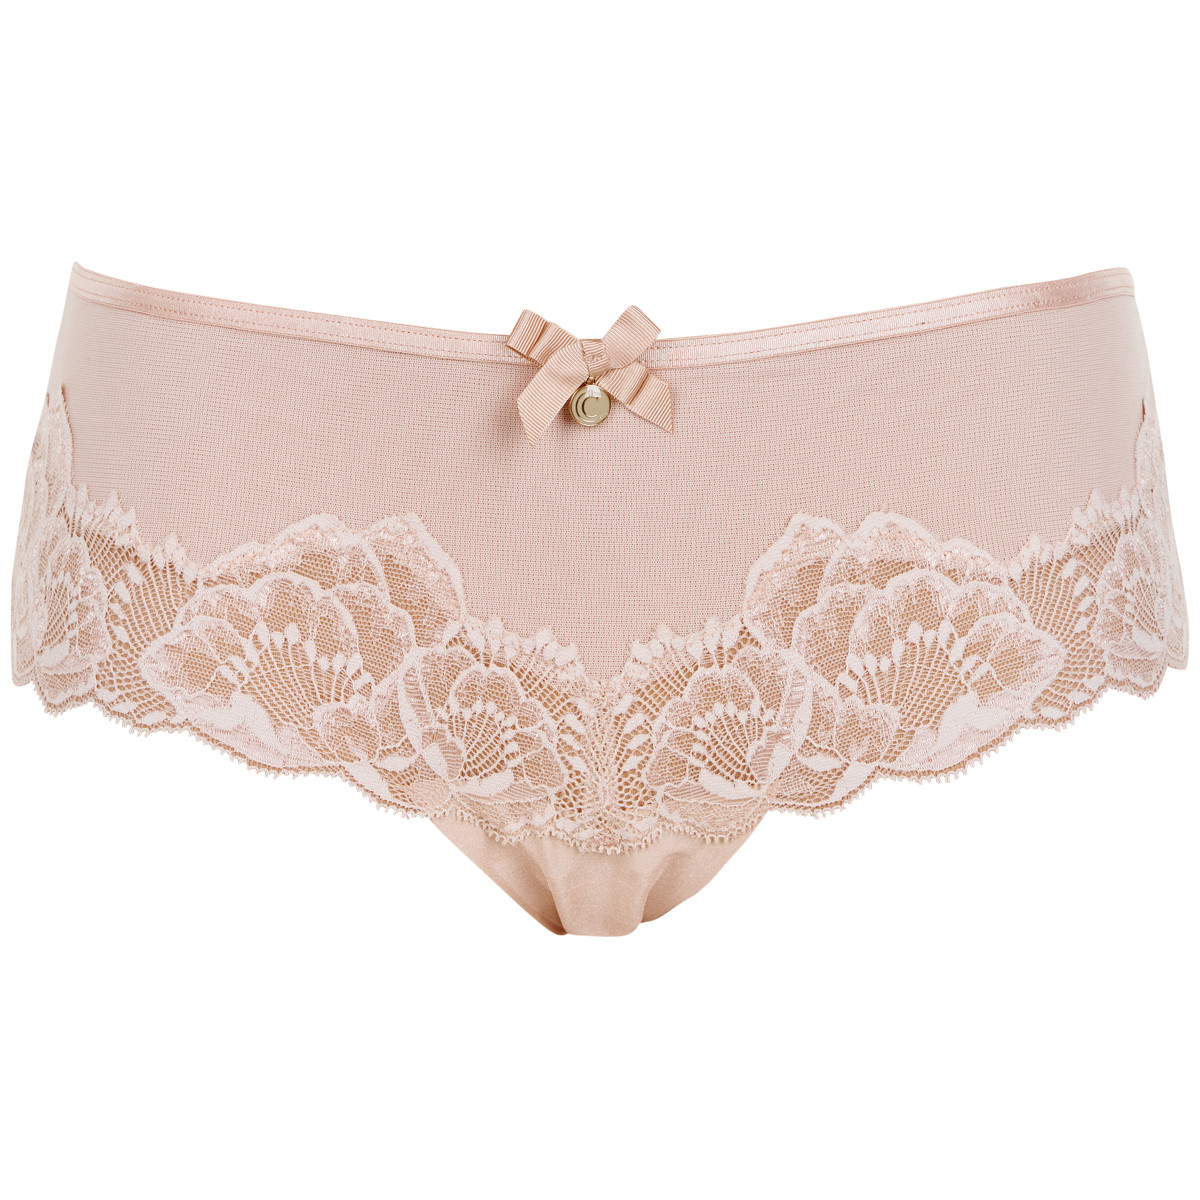 Image of   CHANTELLE ORANGERIE HIPSTER 6764-L6 P (Peau Rosee, 44)